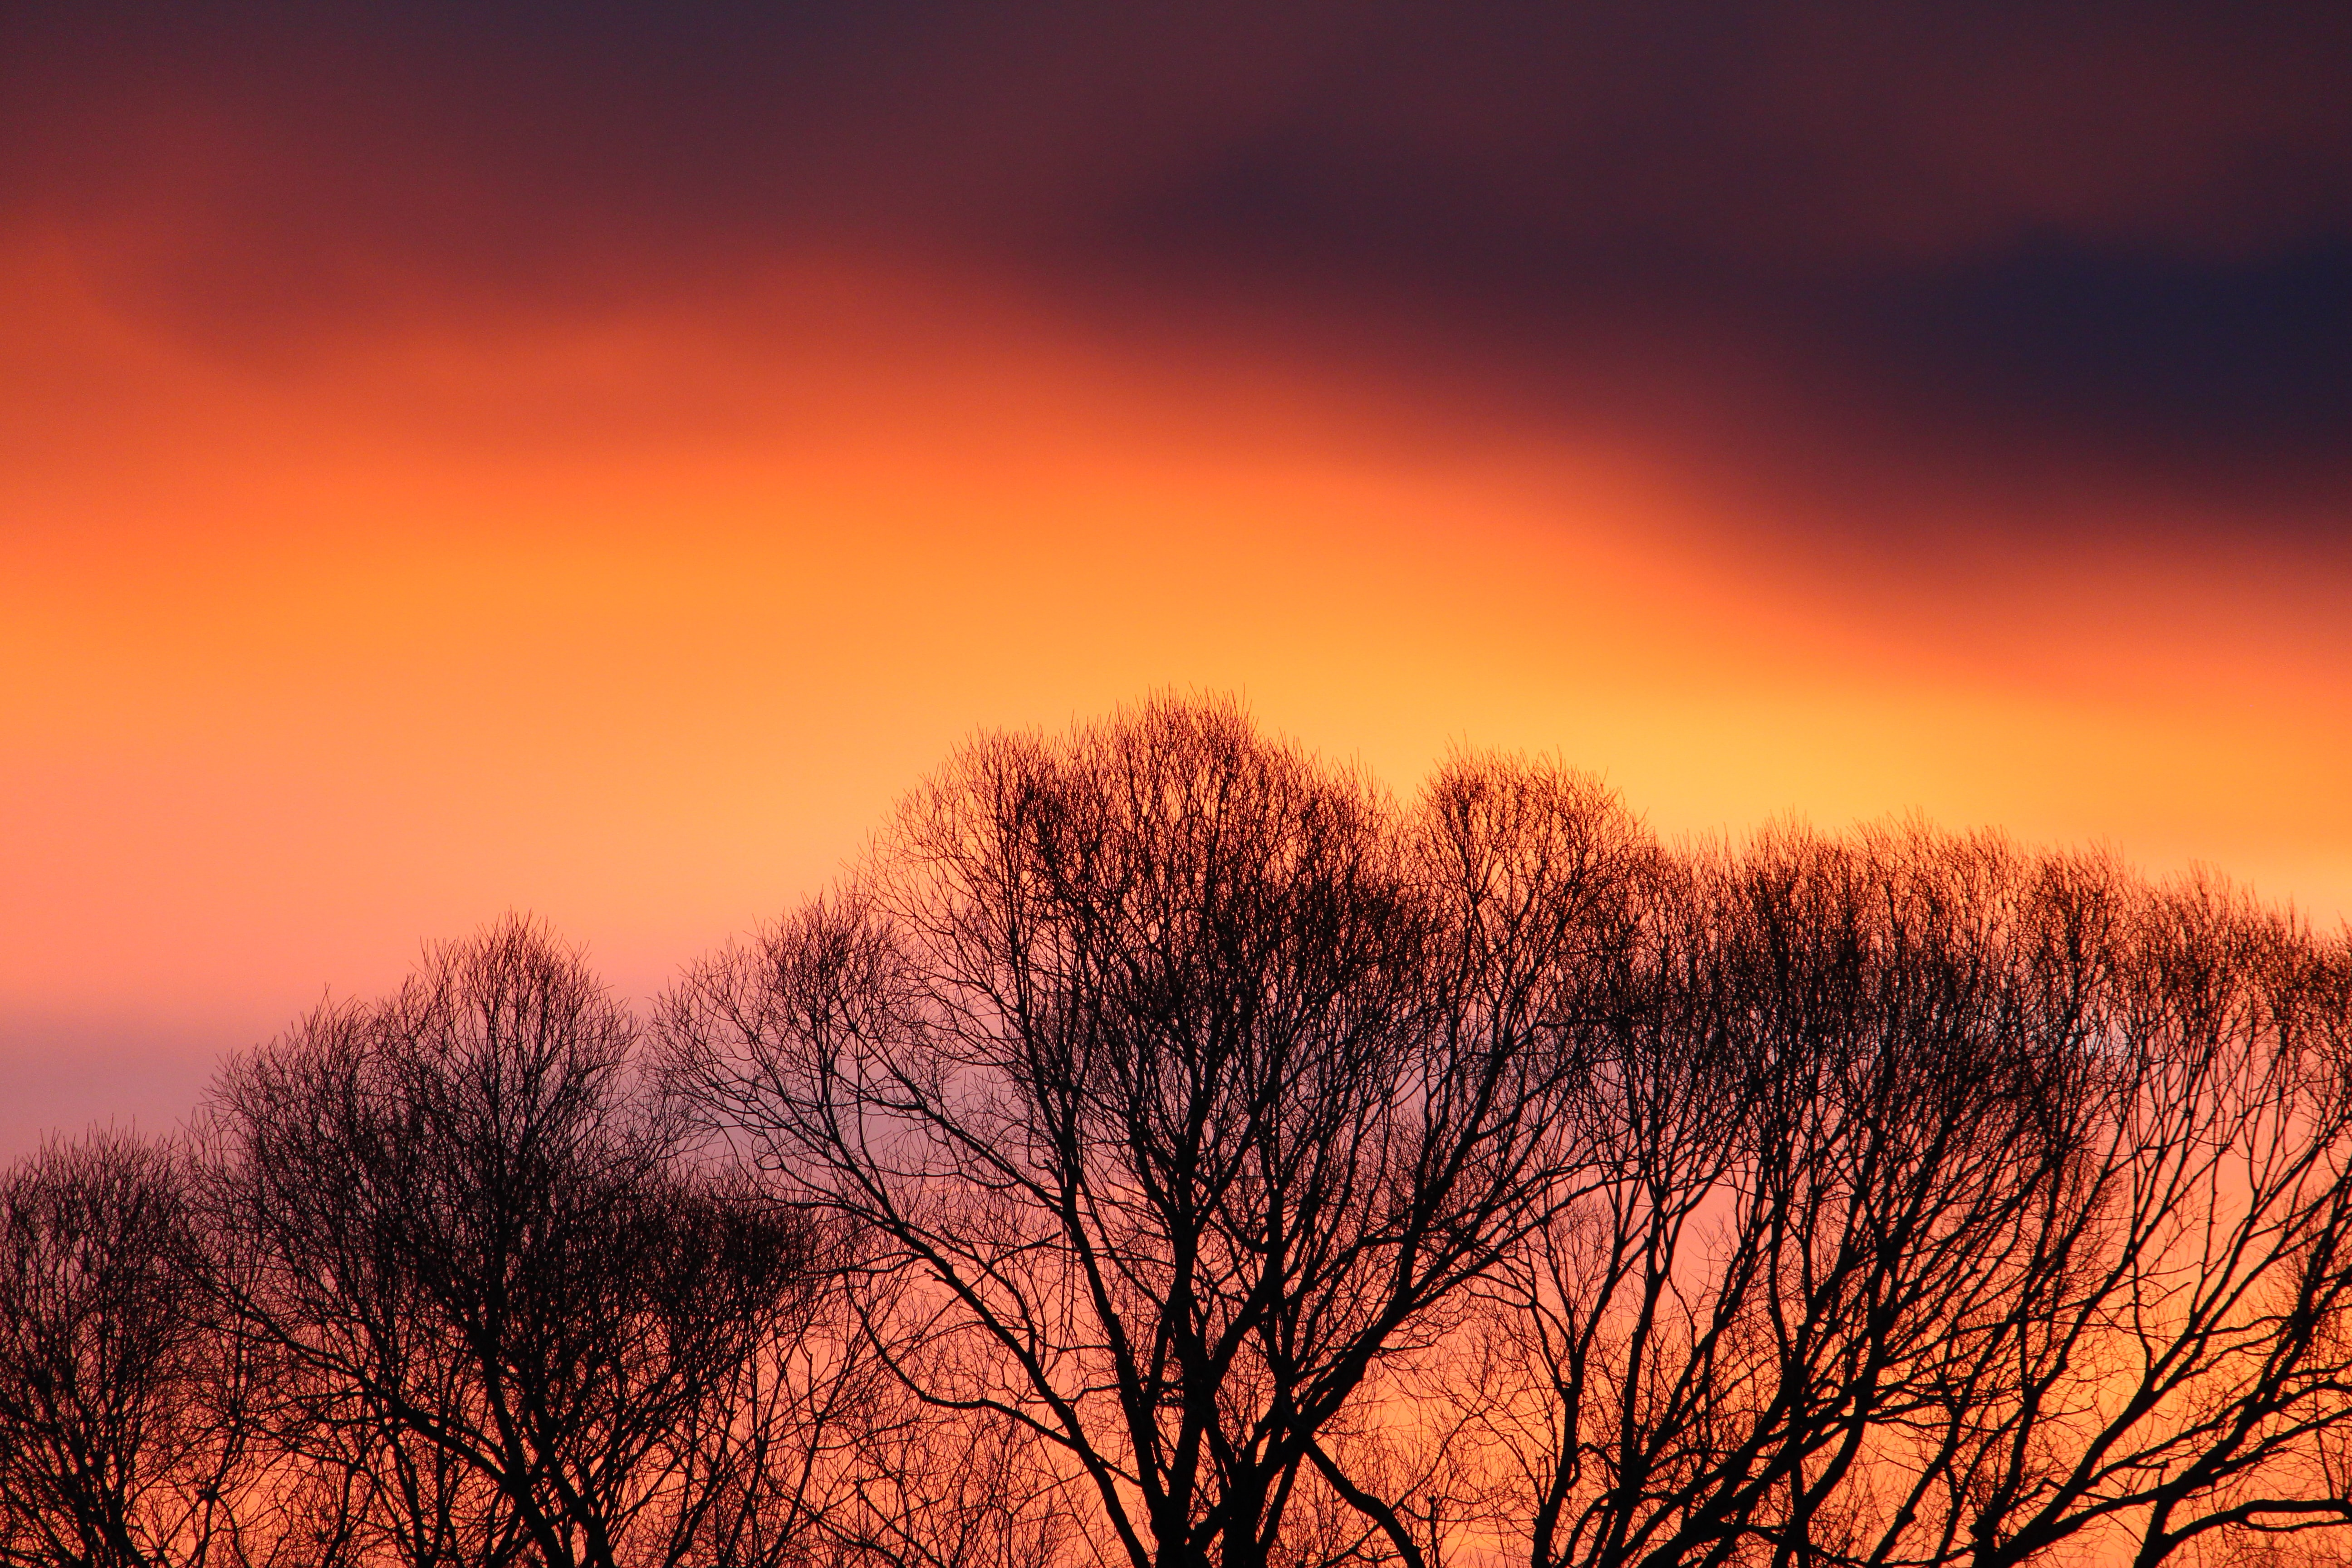 bare trees under orange sky